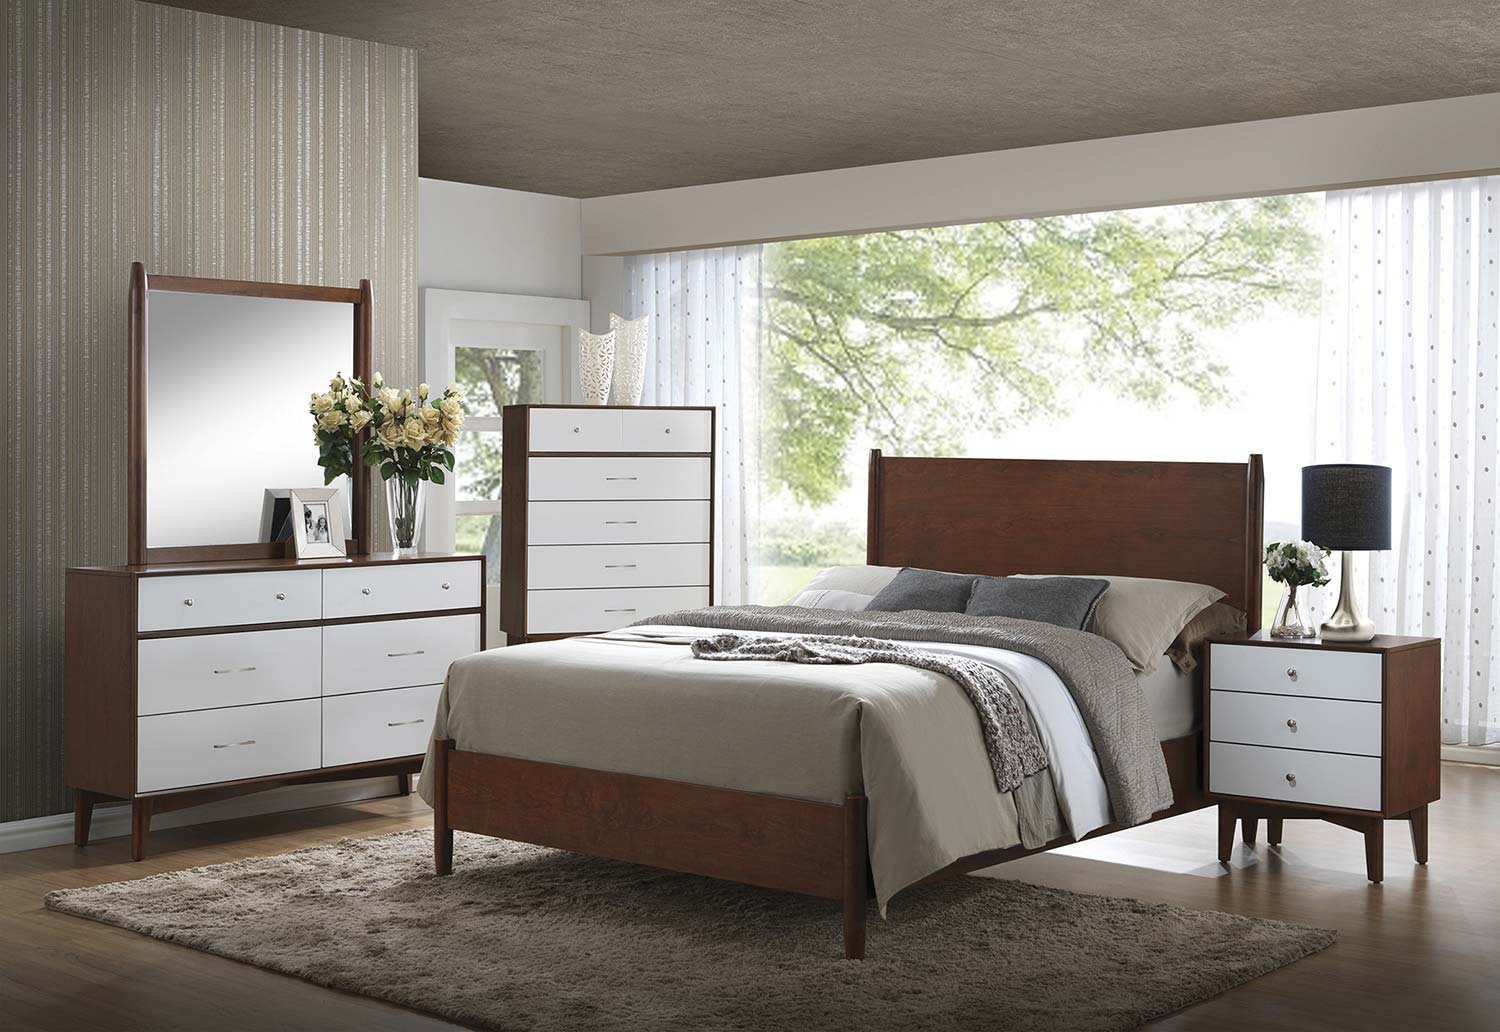 Coaster Oakwood Bedroom Set Golden Brown White BEDROOM SET at Homele